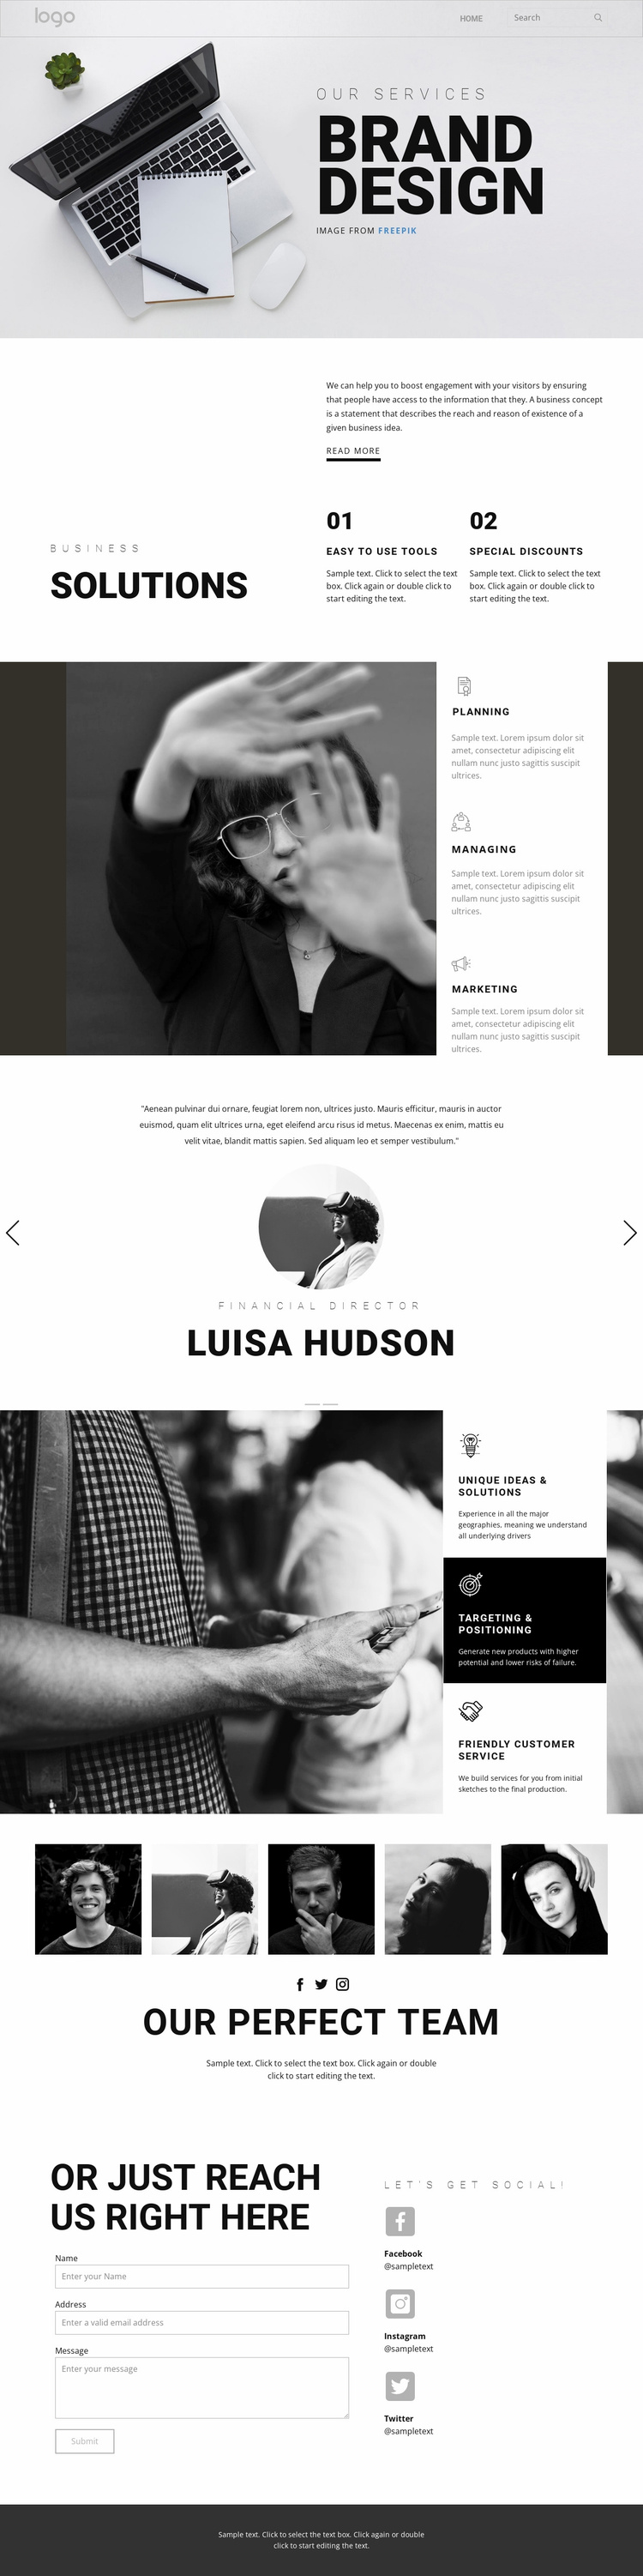 Doing branding for business Landing Page